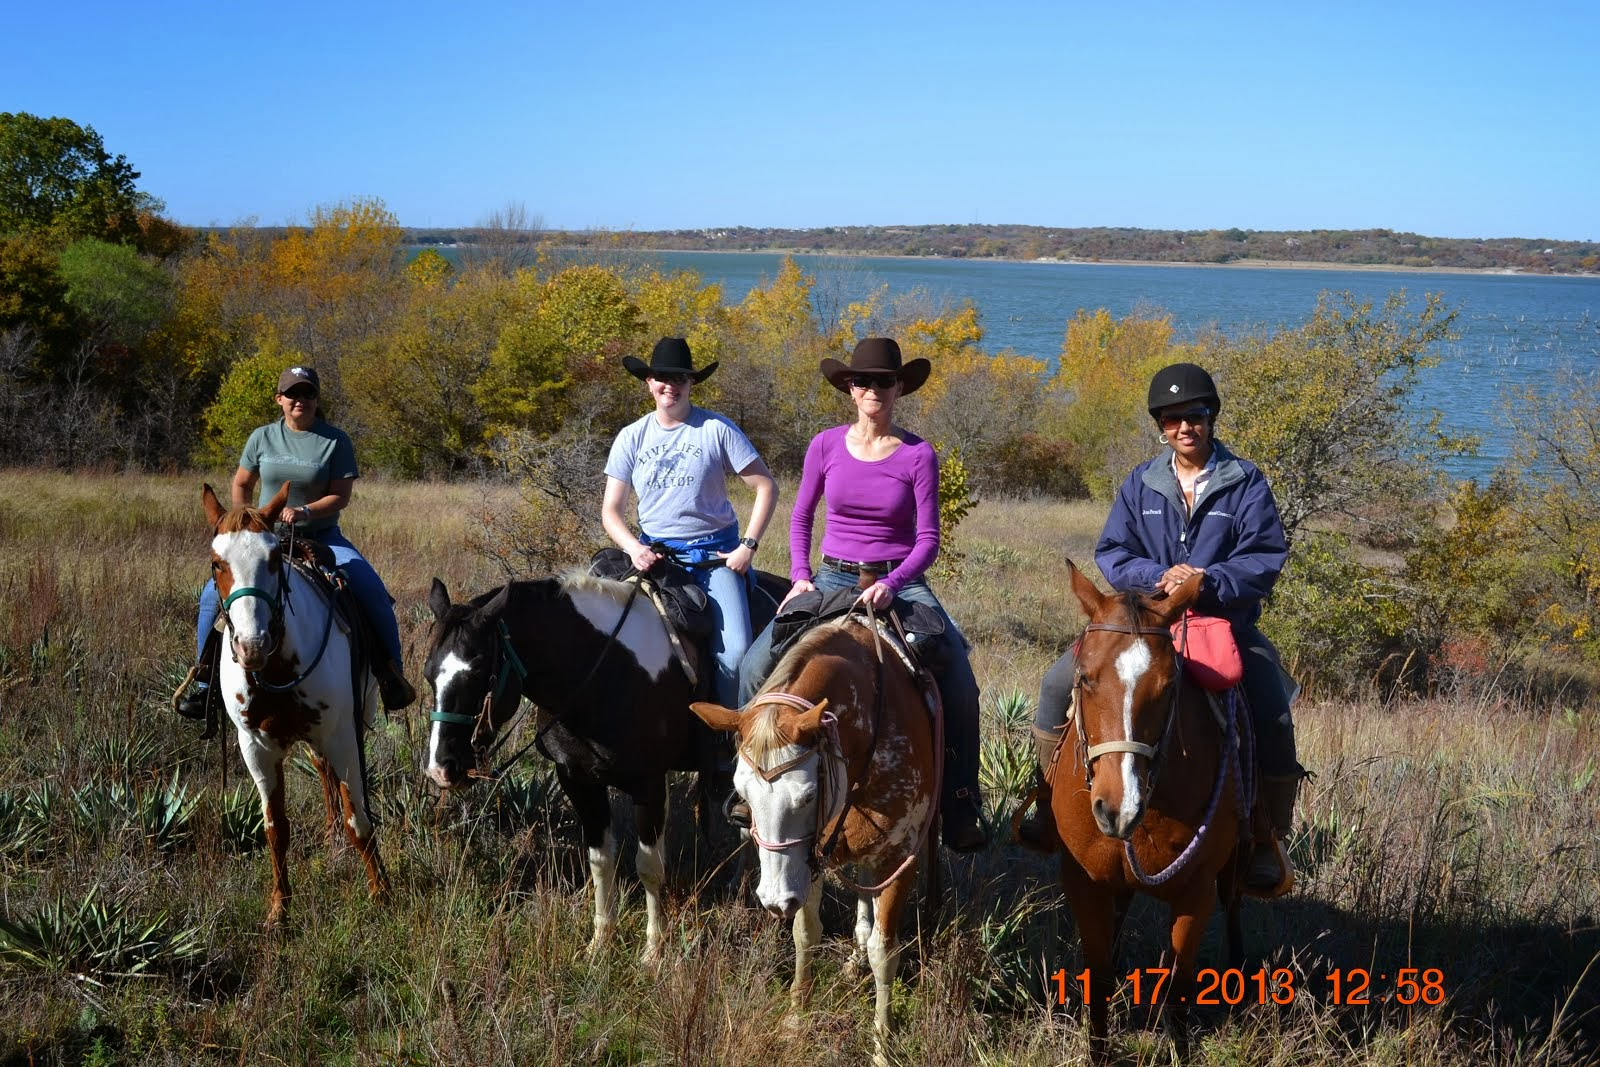 2013-Look at them cowgirls in Texas!